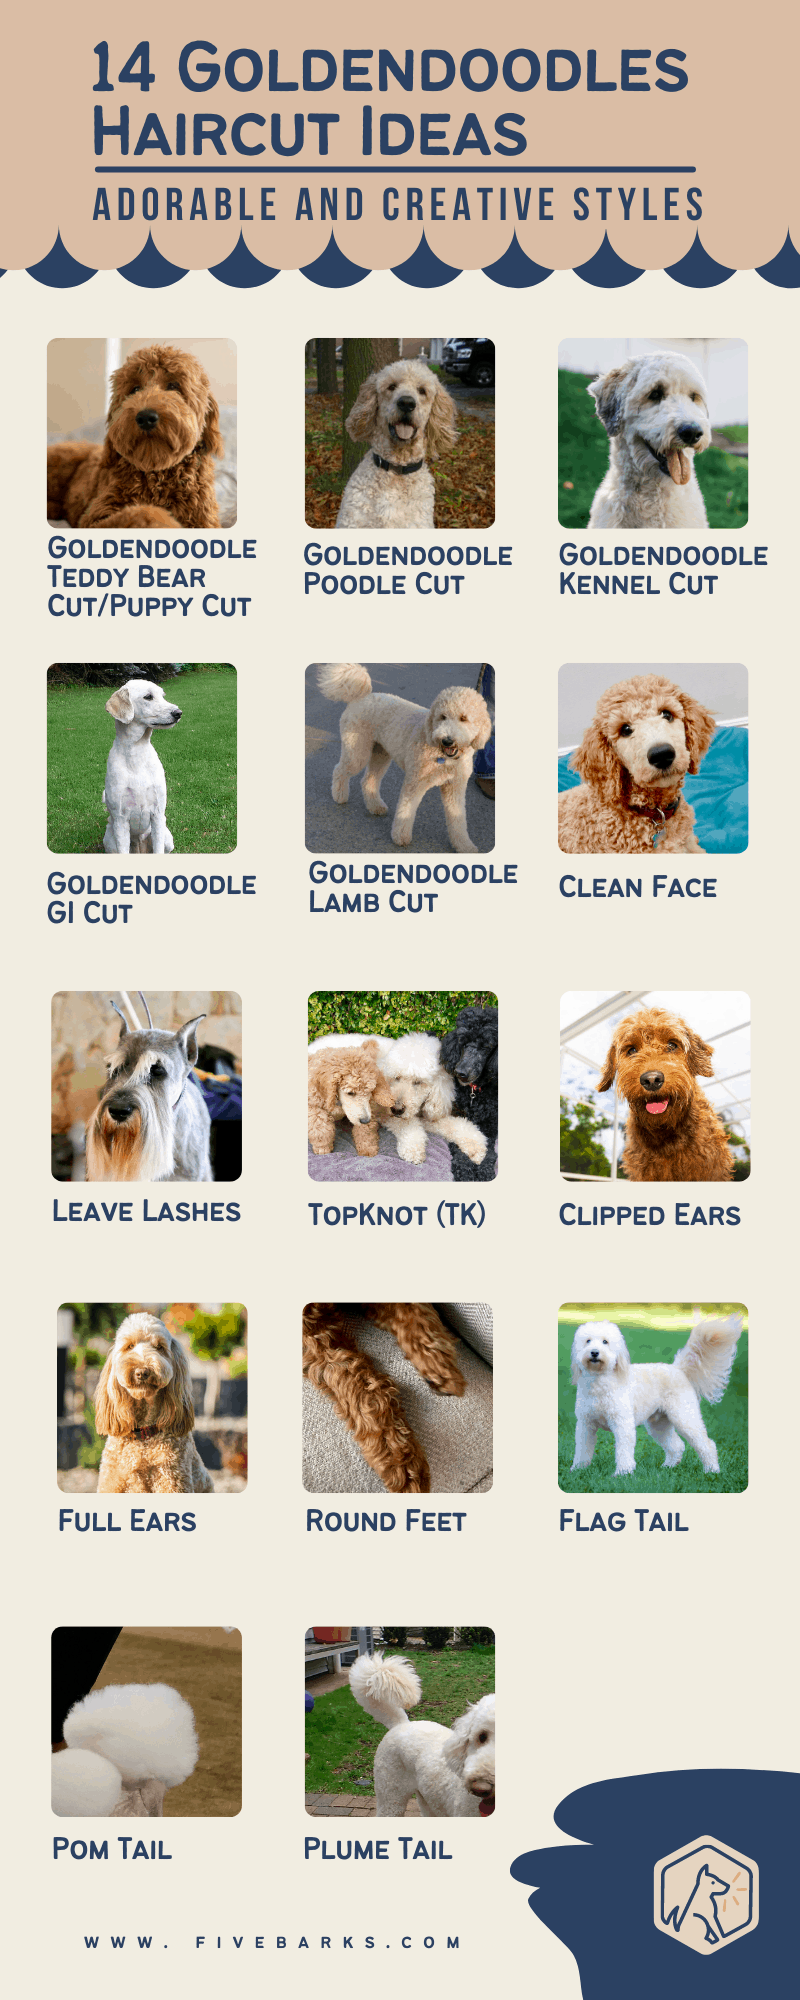 14 Goldendoodles Haircut Ideas - Adorable and Creative Styles -Infographic